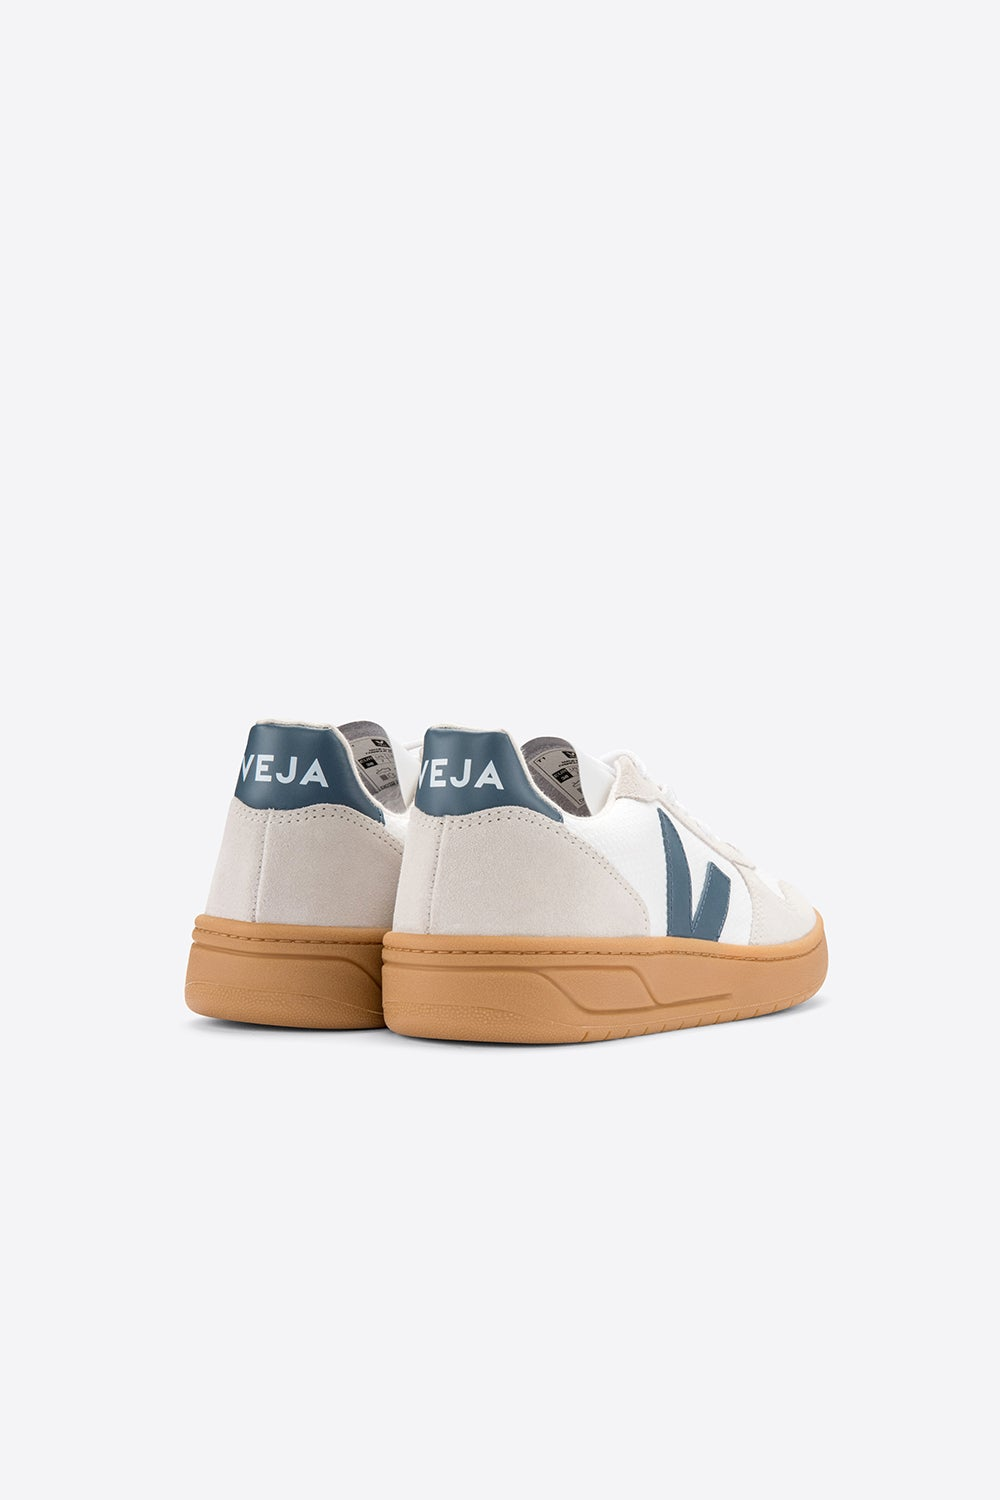 Veja V-10 White/California/Natural